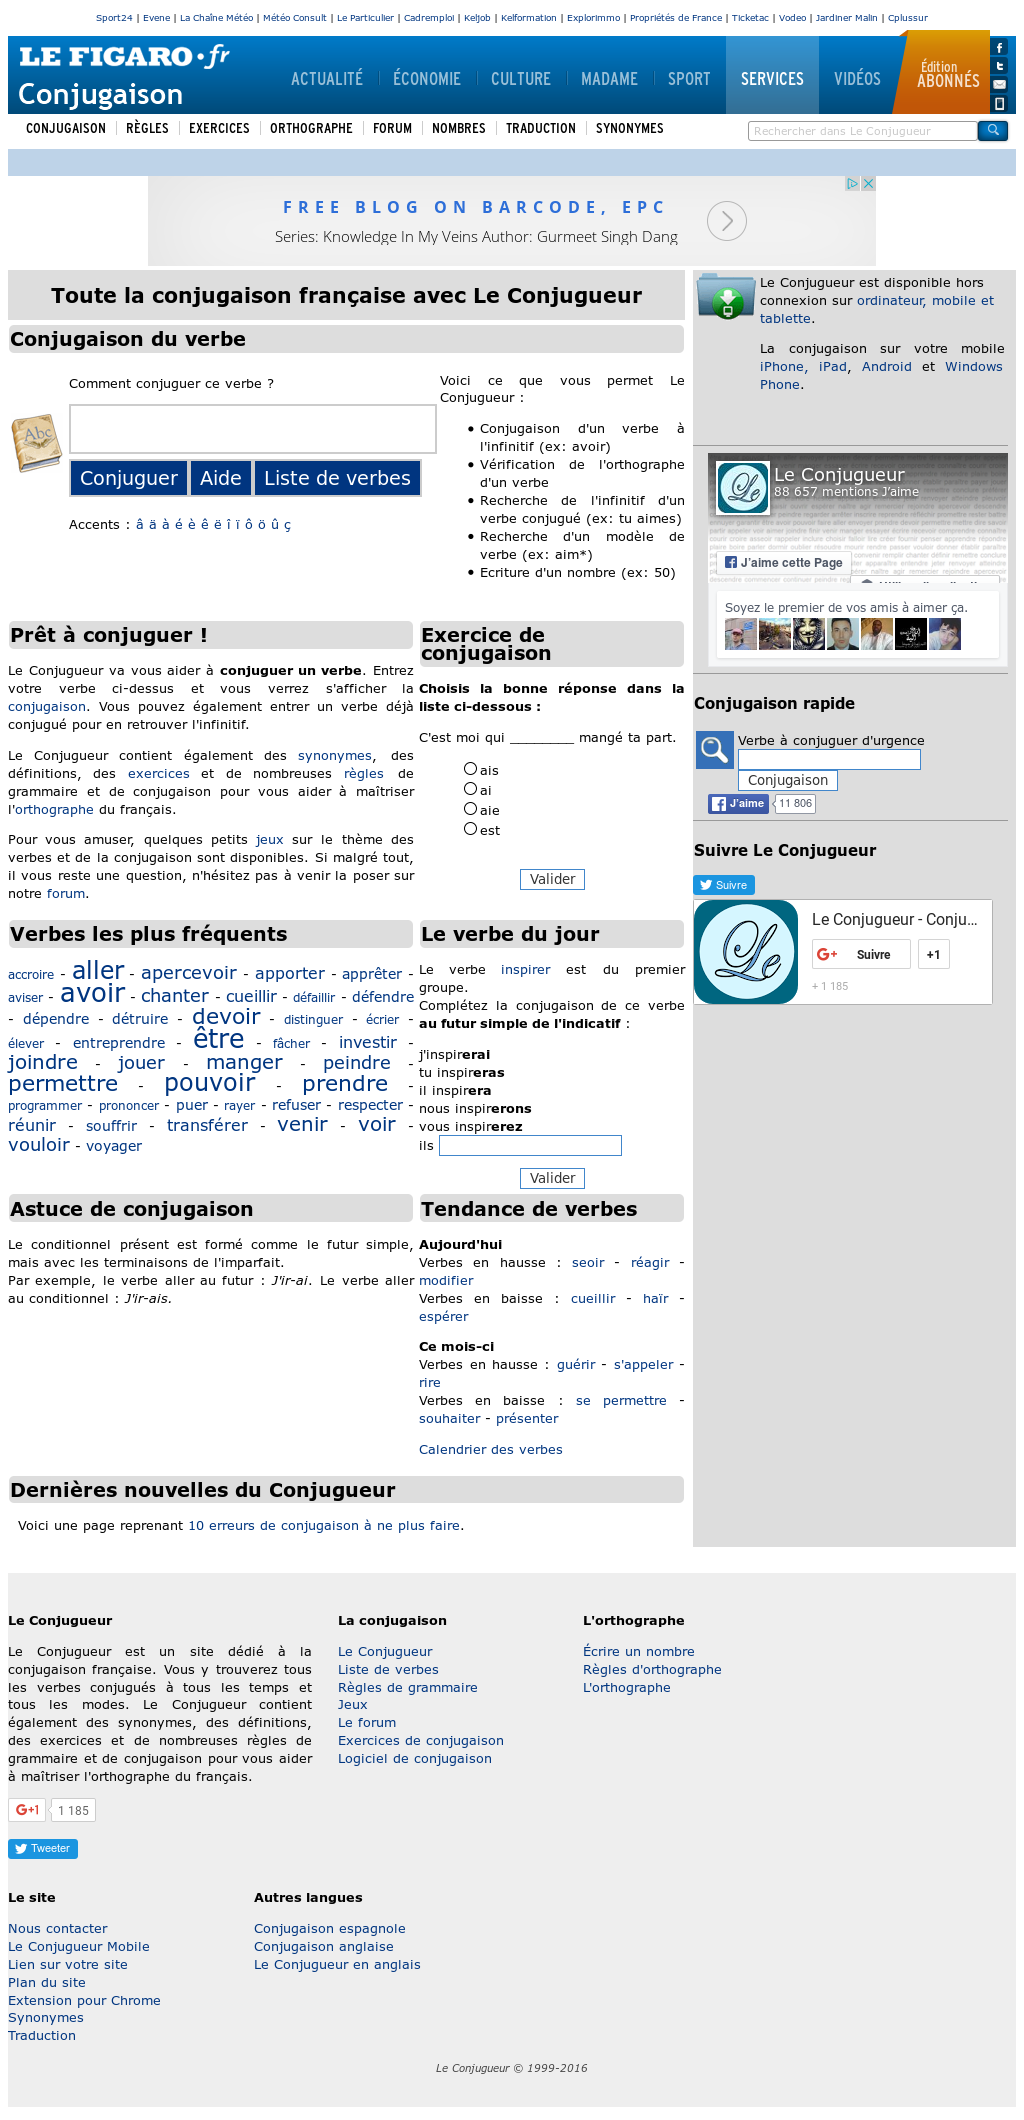 Le Conjugueur S Competitors Revenue Number Of Employees Funding Acquisitions News Owler Company Profile